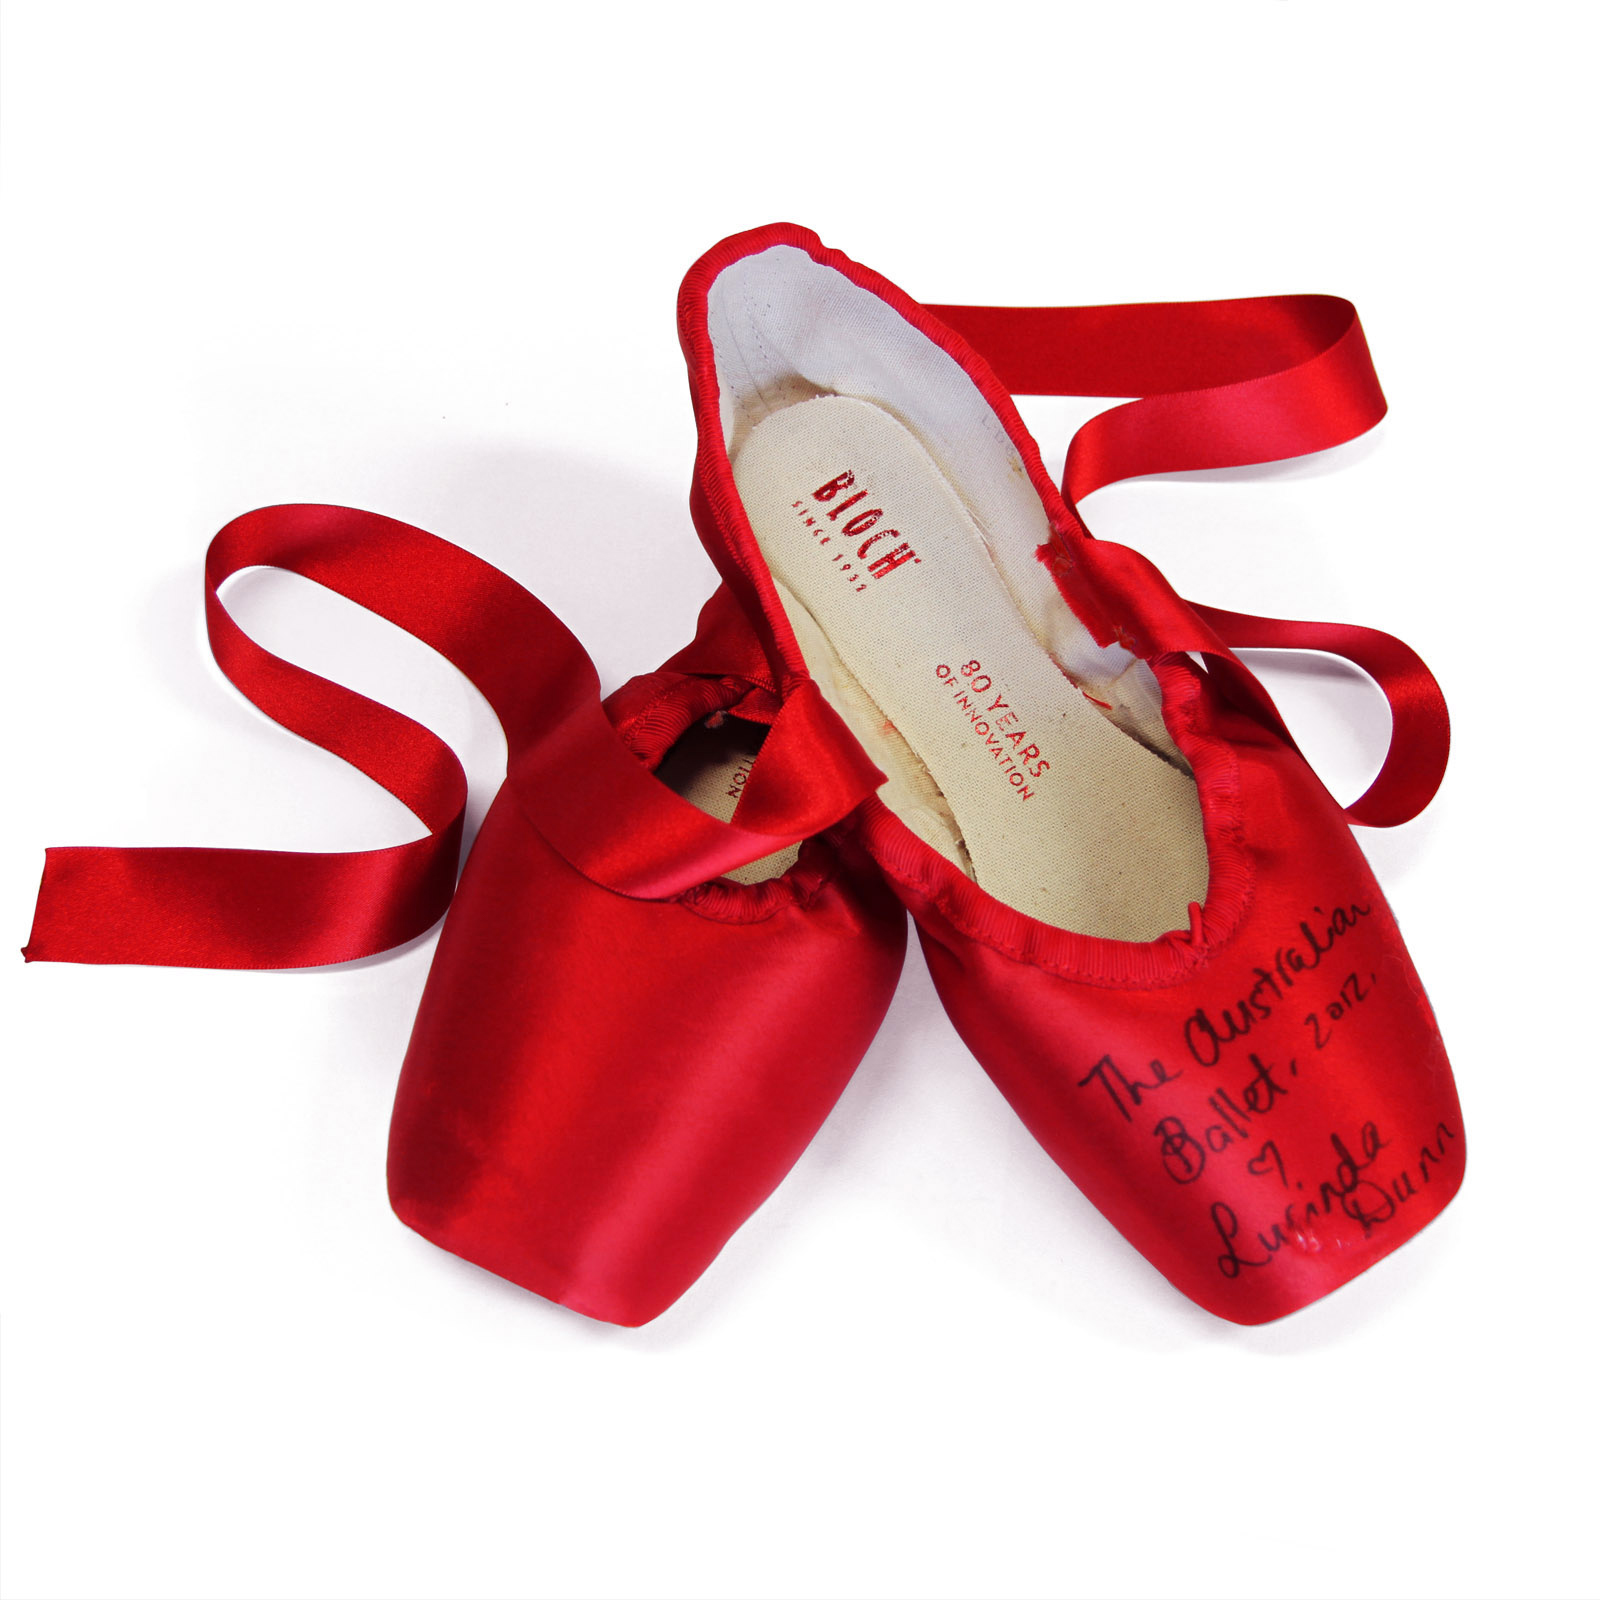 Bloch's Red Pointe Shoe Project